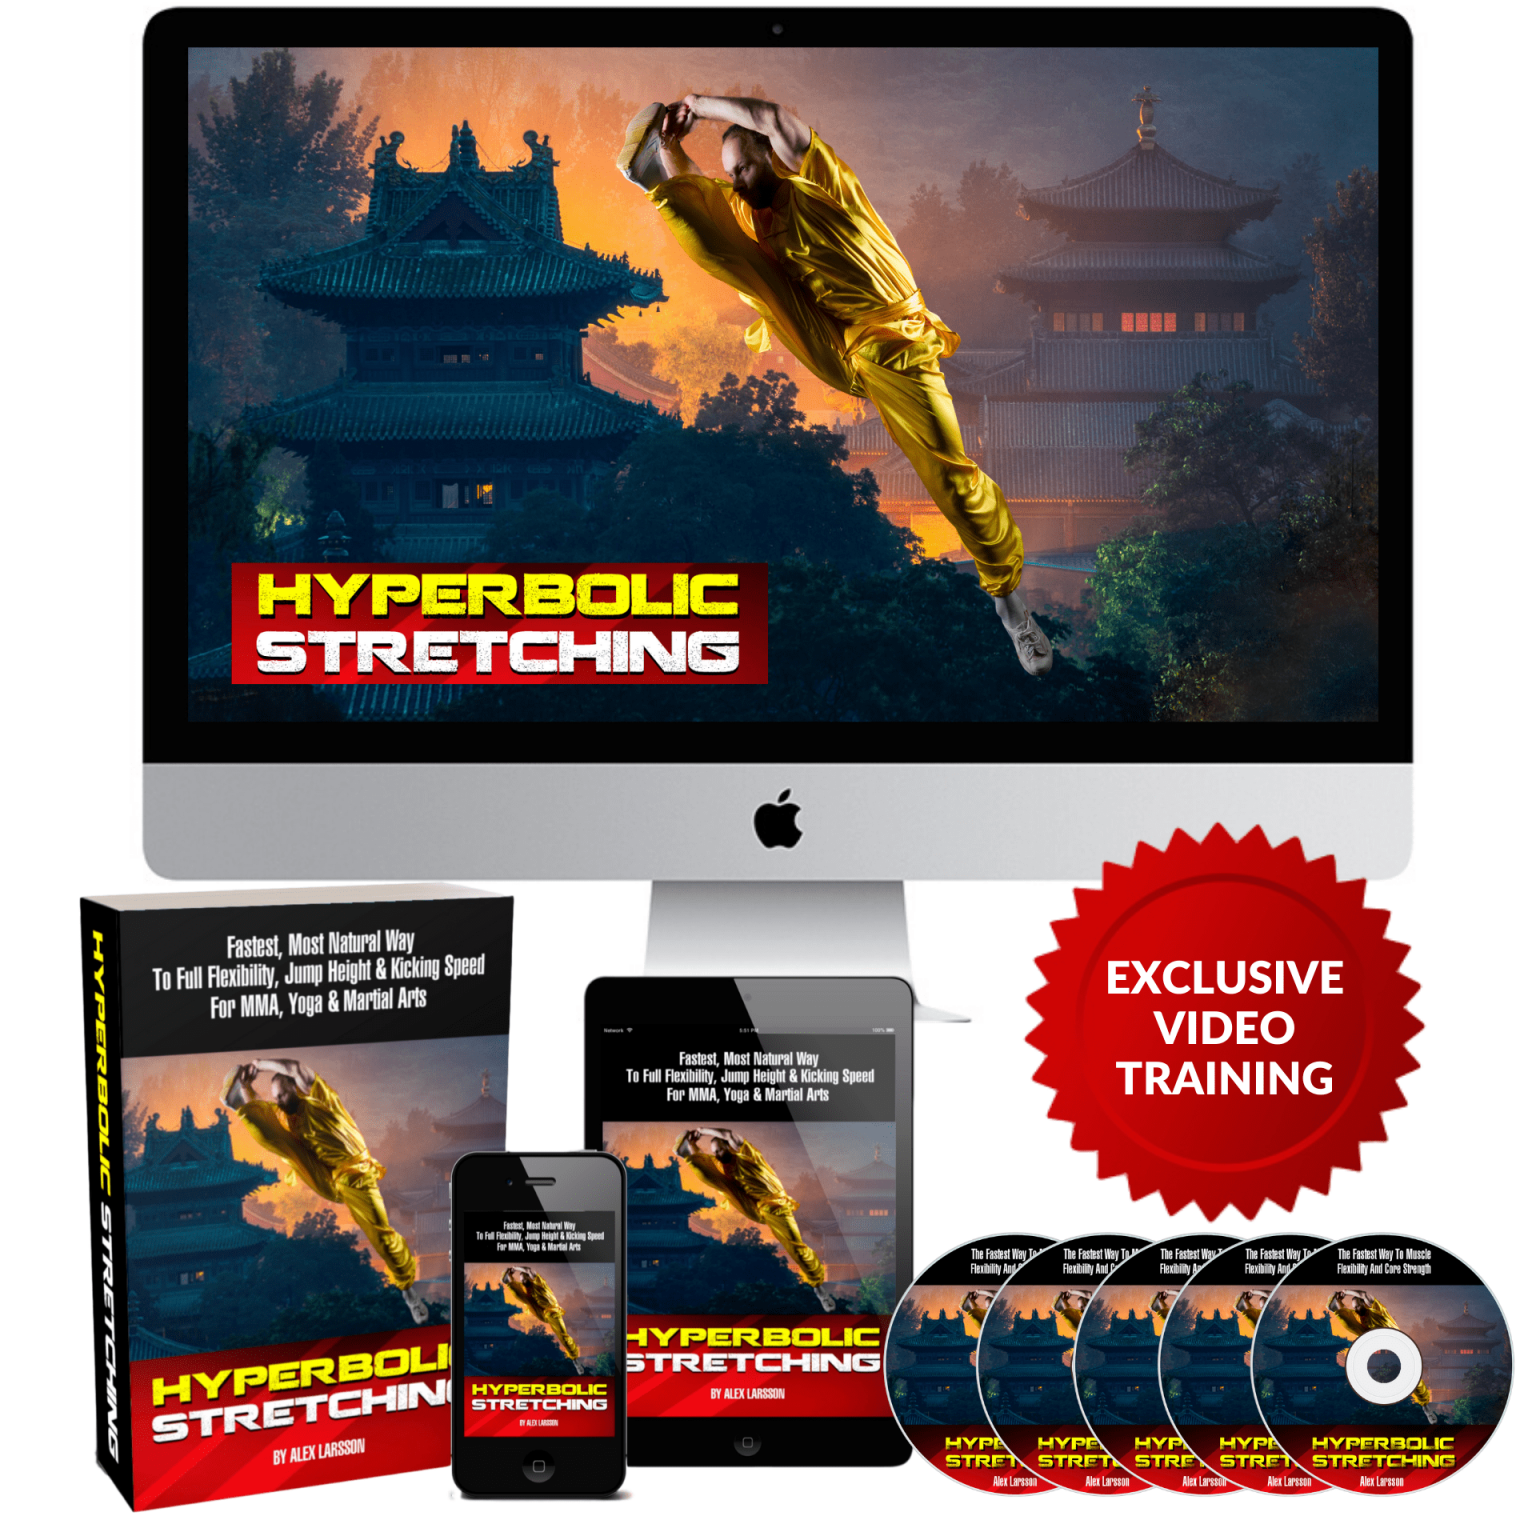 Hyperbolic Stretching review for men